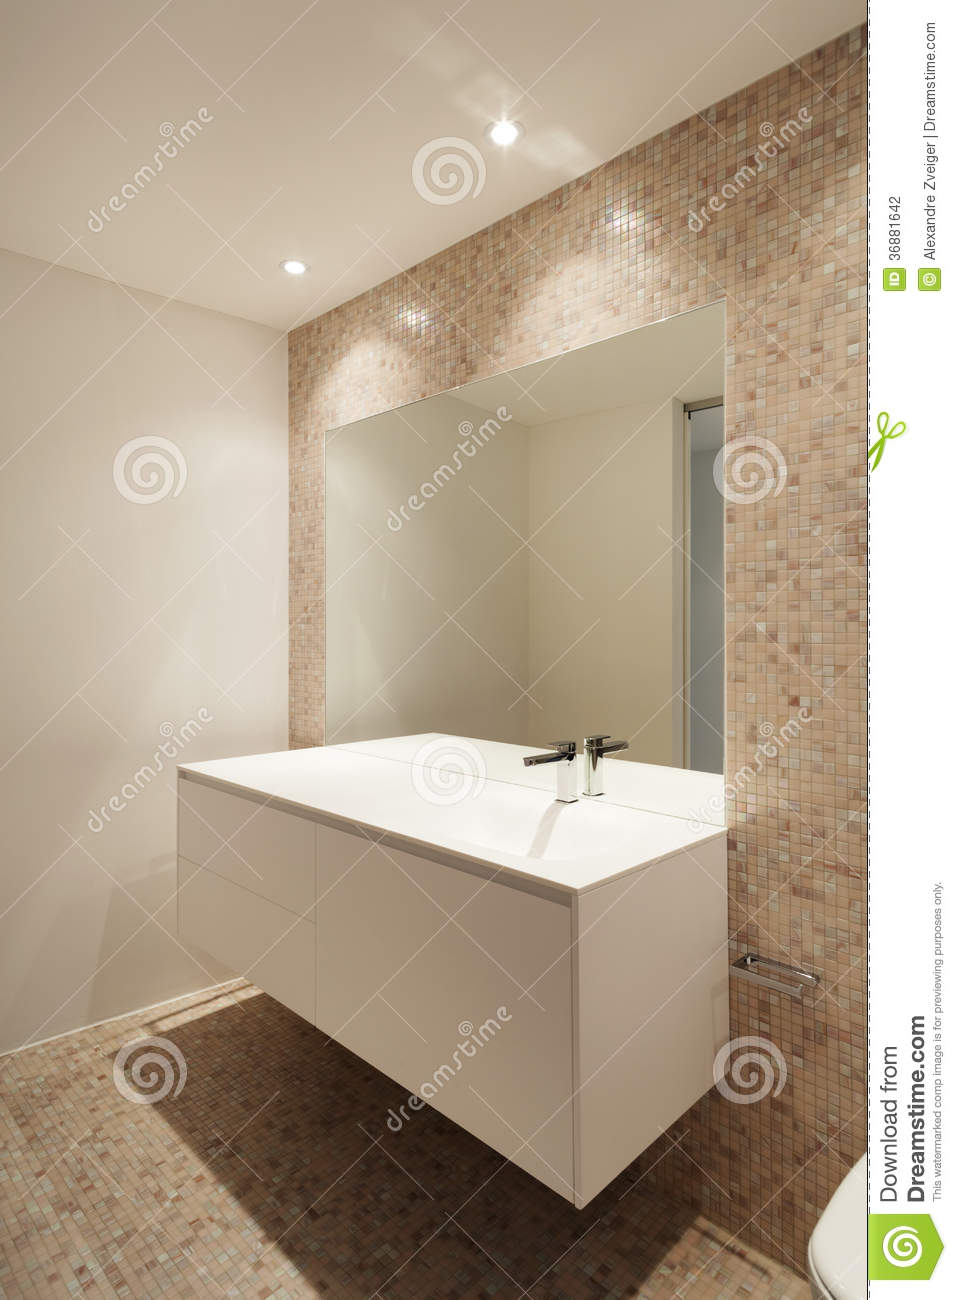 Download Nuova casa interna, bagno fotografia stock. Immagine di bathroom - 36881642